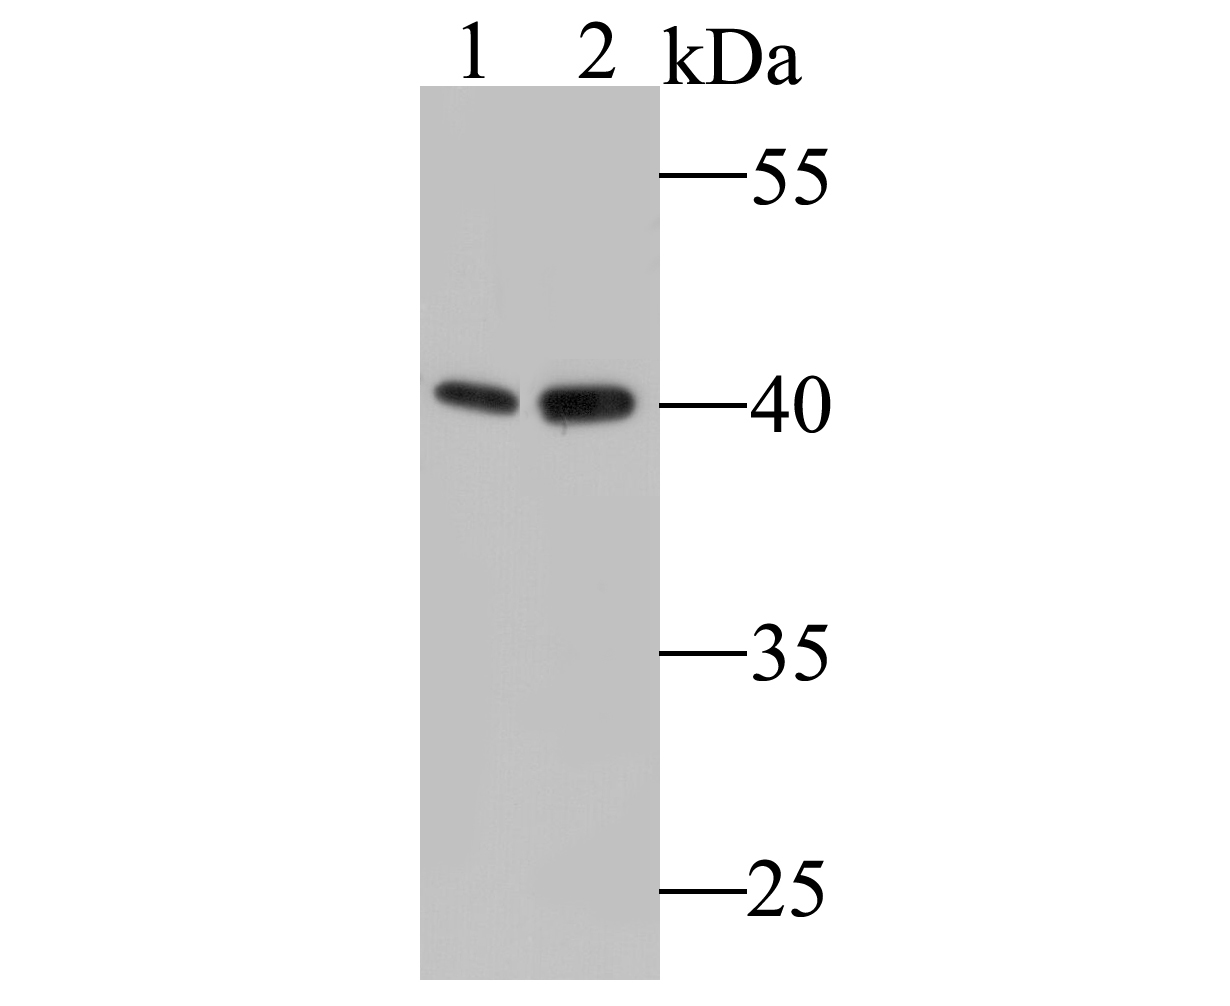 Western blot analysis of COPS3/CSN3 on different lysates. Proteins were transferred to a PVDF membrane and blocked with 5% BSA in PBS for 1 hour at room temperature. The primary antibody (ET7109-60, 1/500) was used in 5% BSA at room temperature for 2 hours. Goat Anti-Rabbit IgG - HRP Secondary Antibody (HA1001) at 1:5,000 dilution was used for 1 hour at room temperature.<br /> Positive control: <br /> Lane 1: Human skeletal muscle tissue lysate<br /> Lane 2: Rat bone marrow lysate